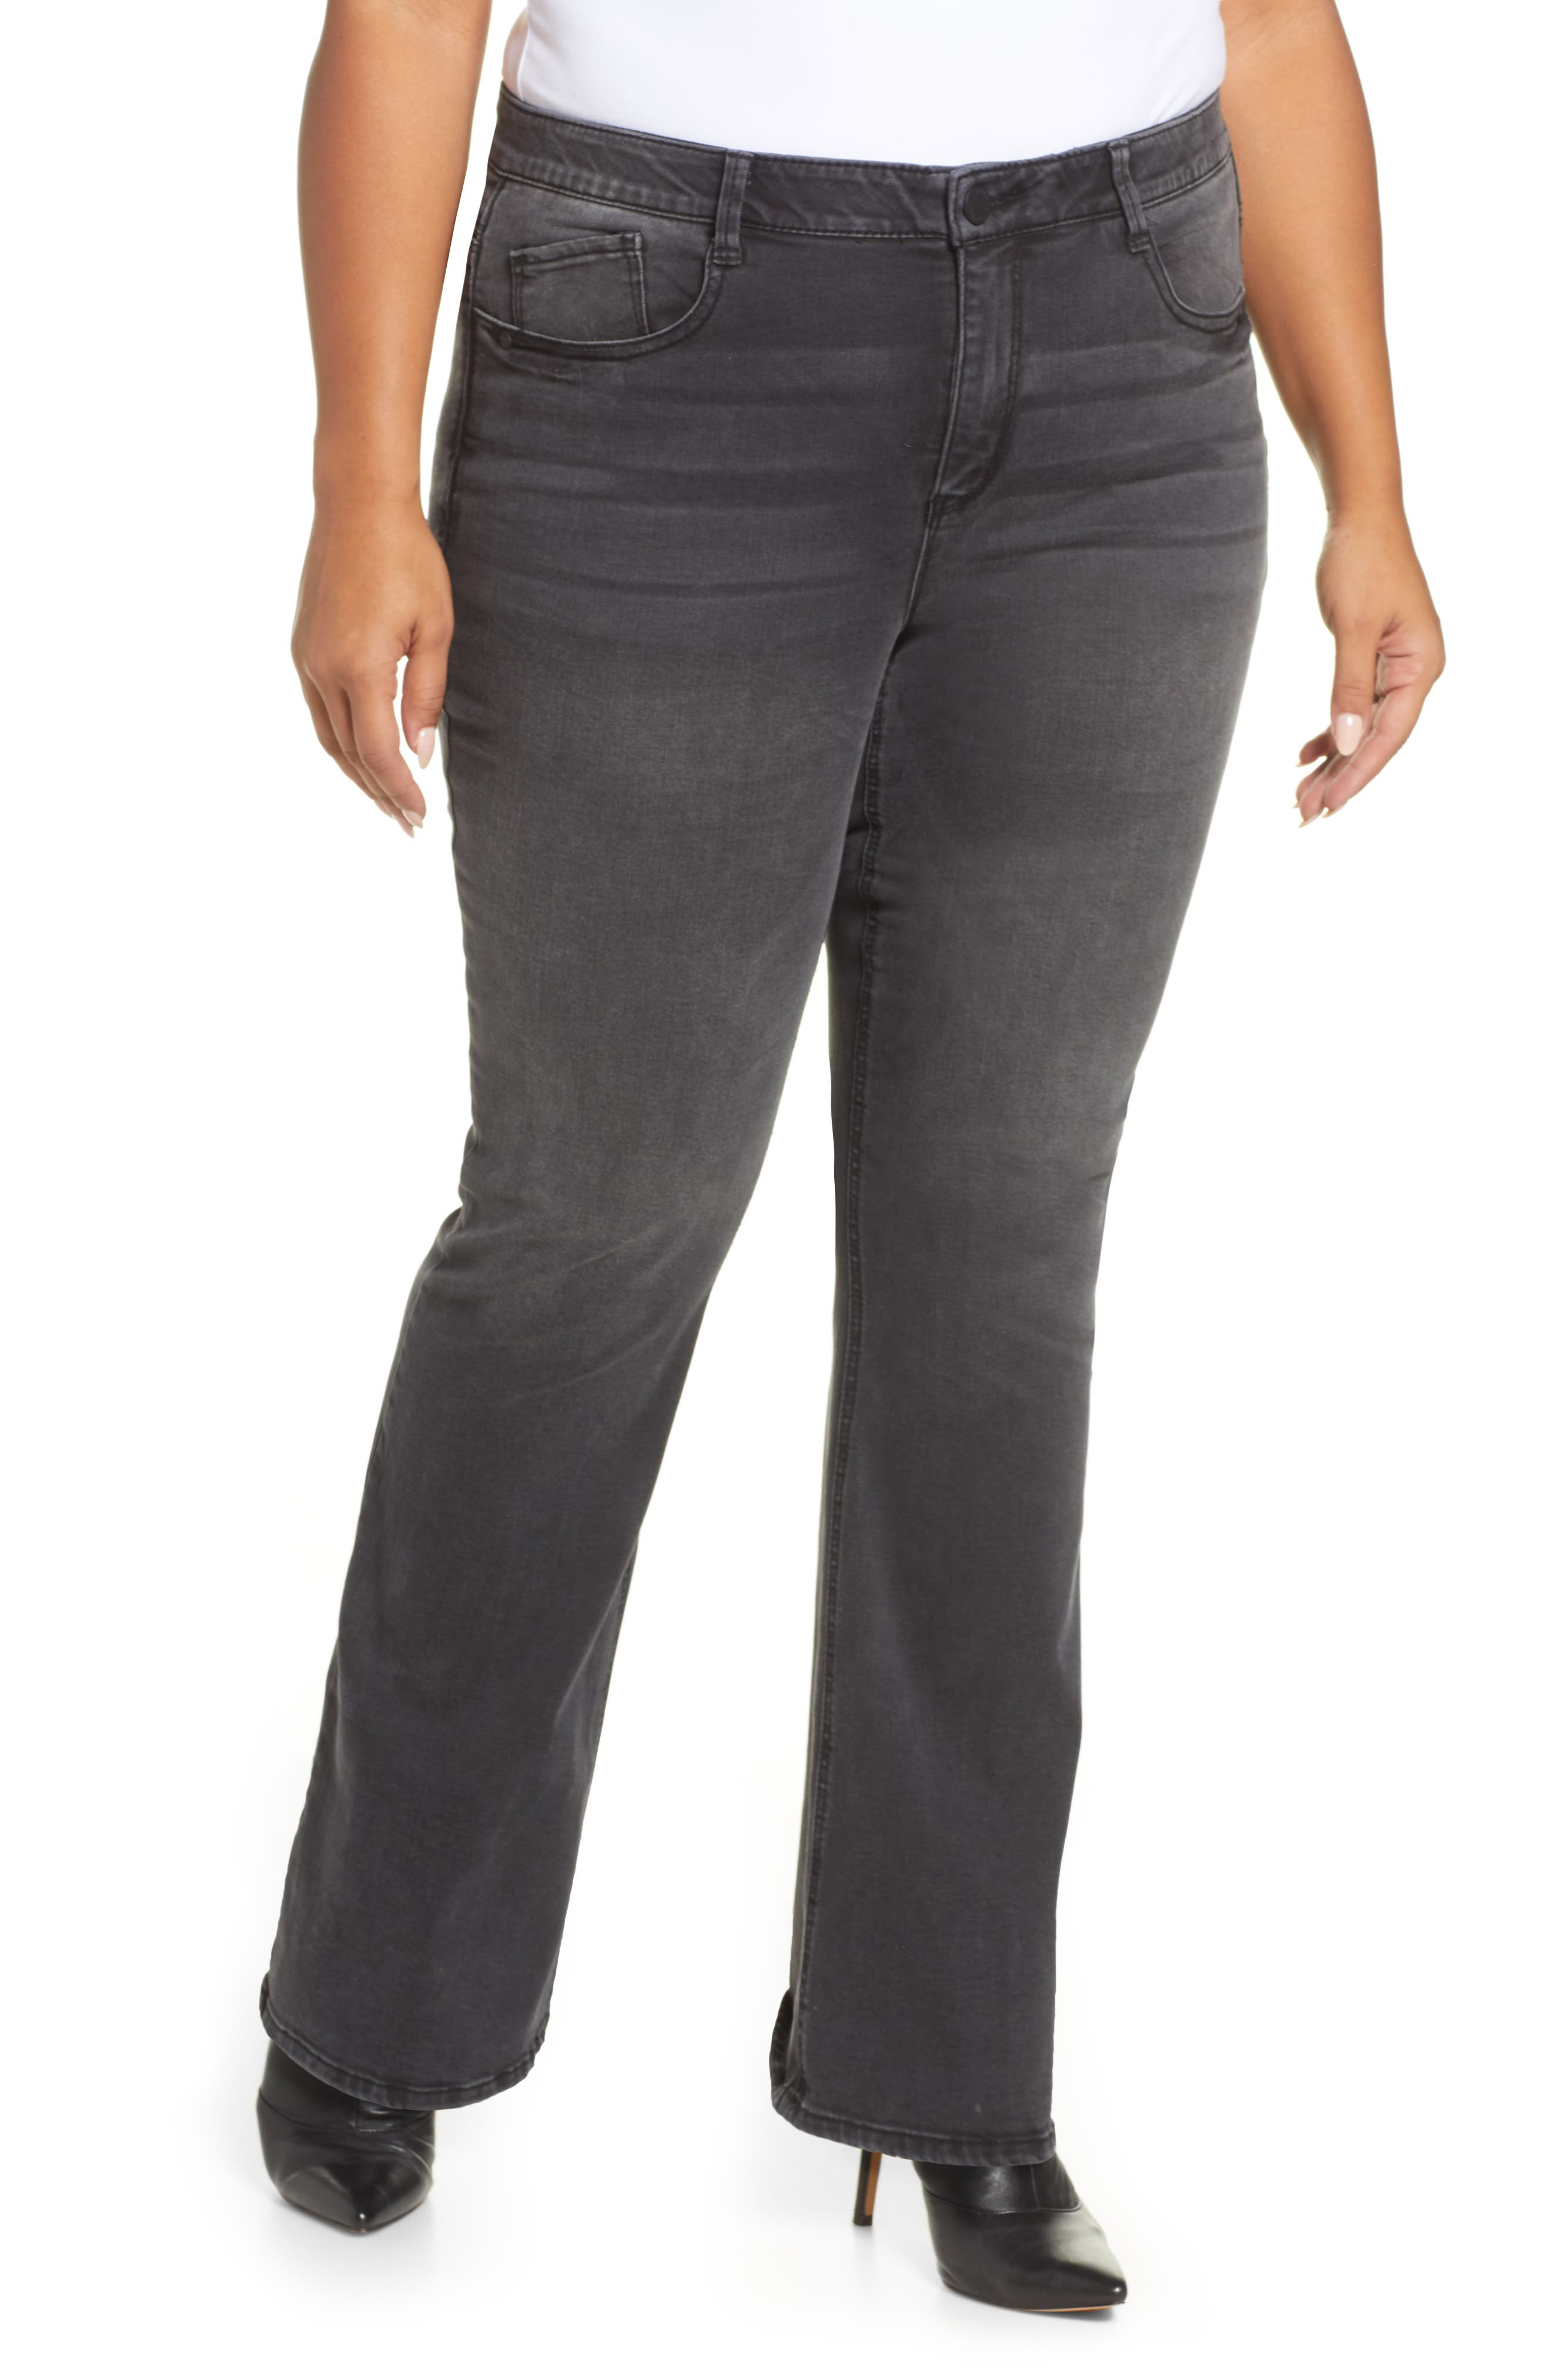 An elongating cut of stretch denim gives these jeans a slimming, high-waisted fit with Ab-solution technology to shape, smooth and lift in all the right places. Style Name: Wit & Wisdom Ab-Solution Itty Bitty More High Waist Bootcut Jeans (Plus Size) (Nordstrom Exclusive). Style Number: 5972714. Available in stores.